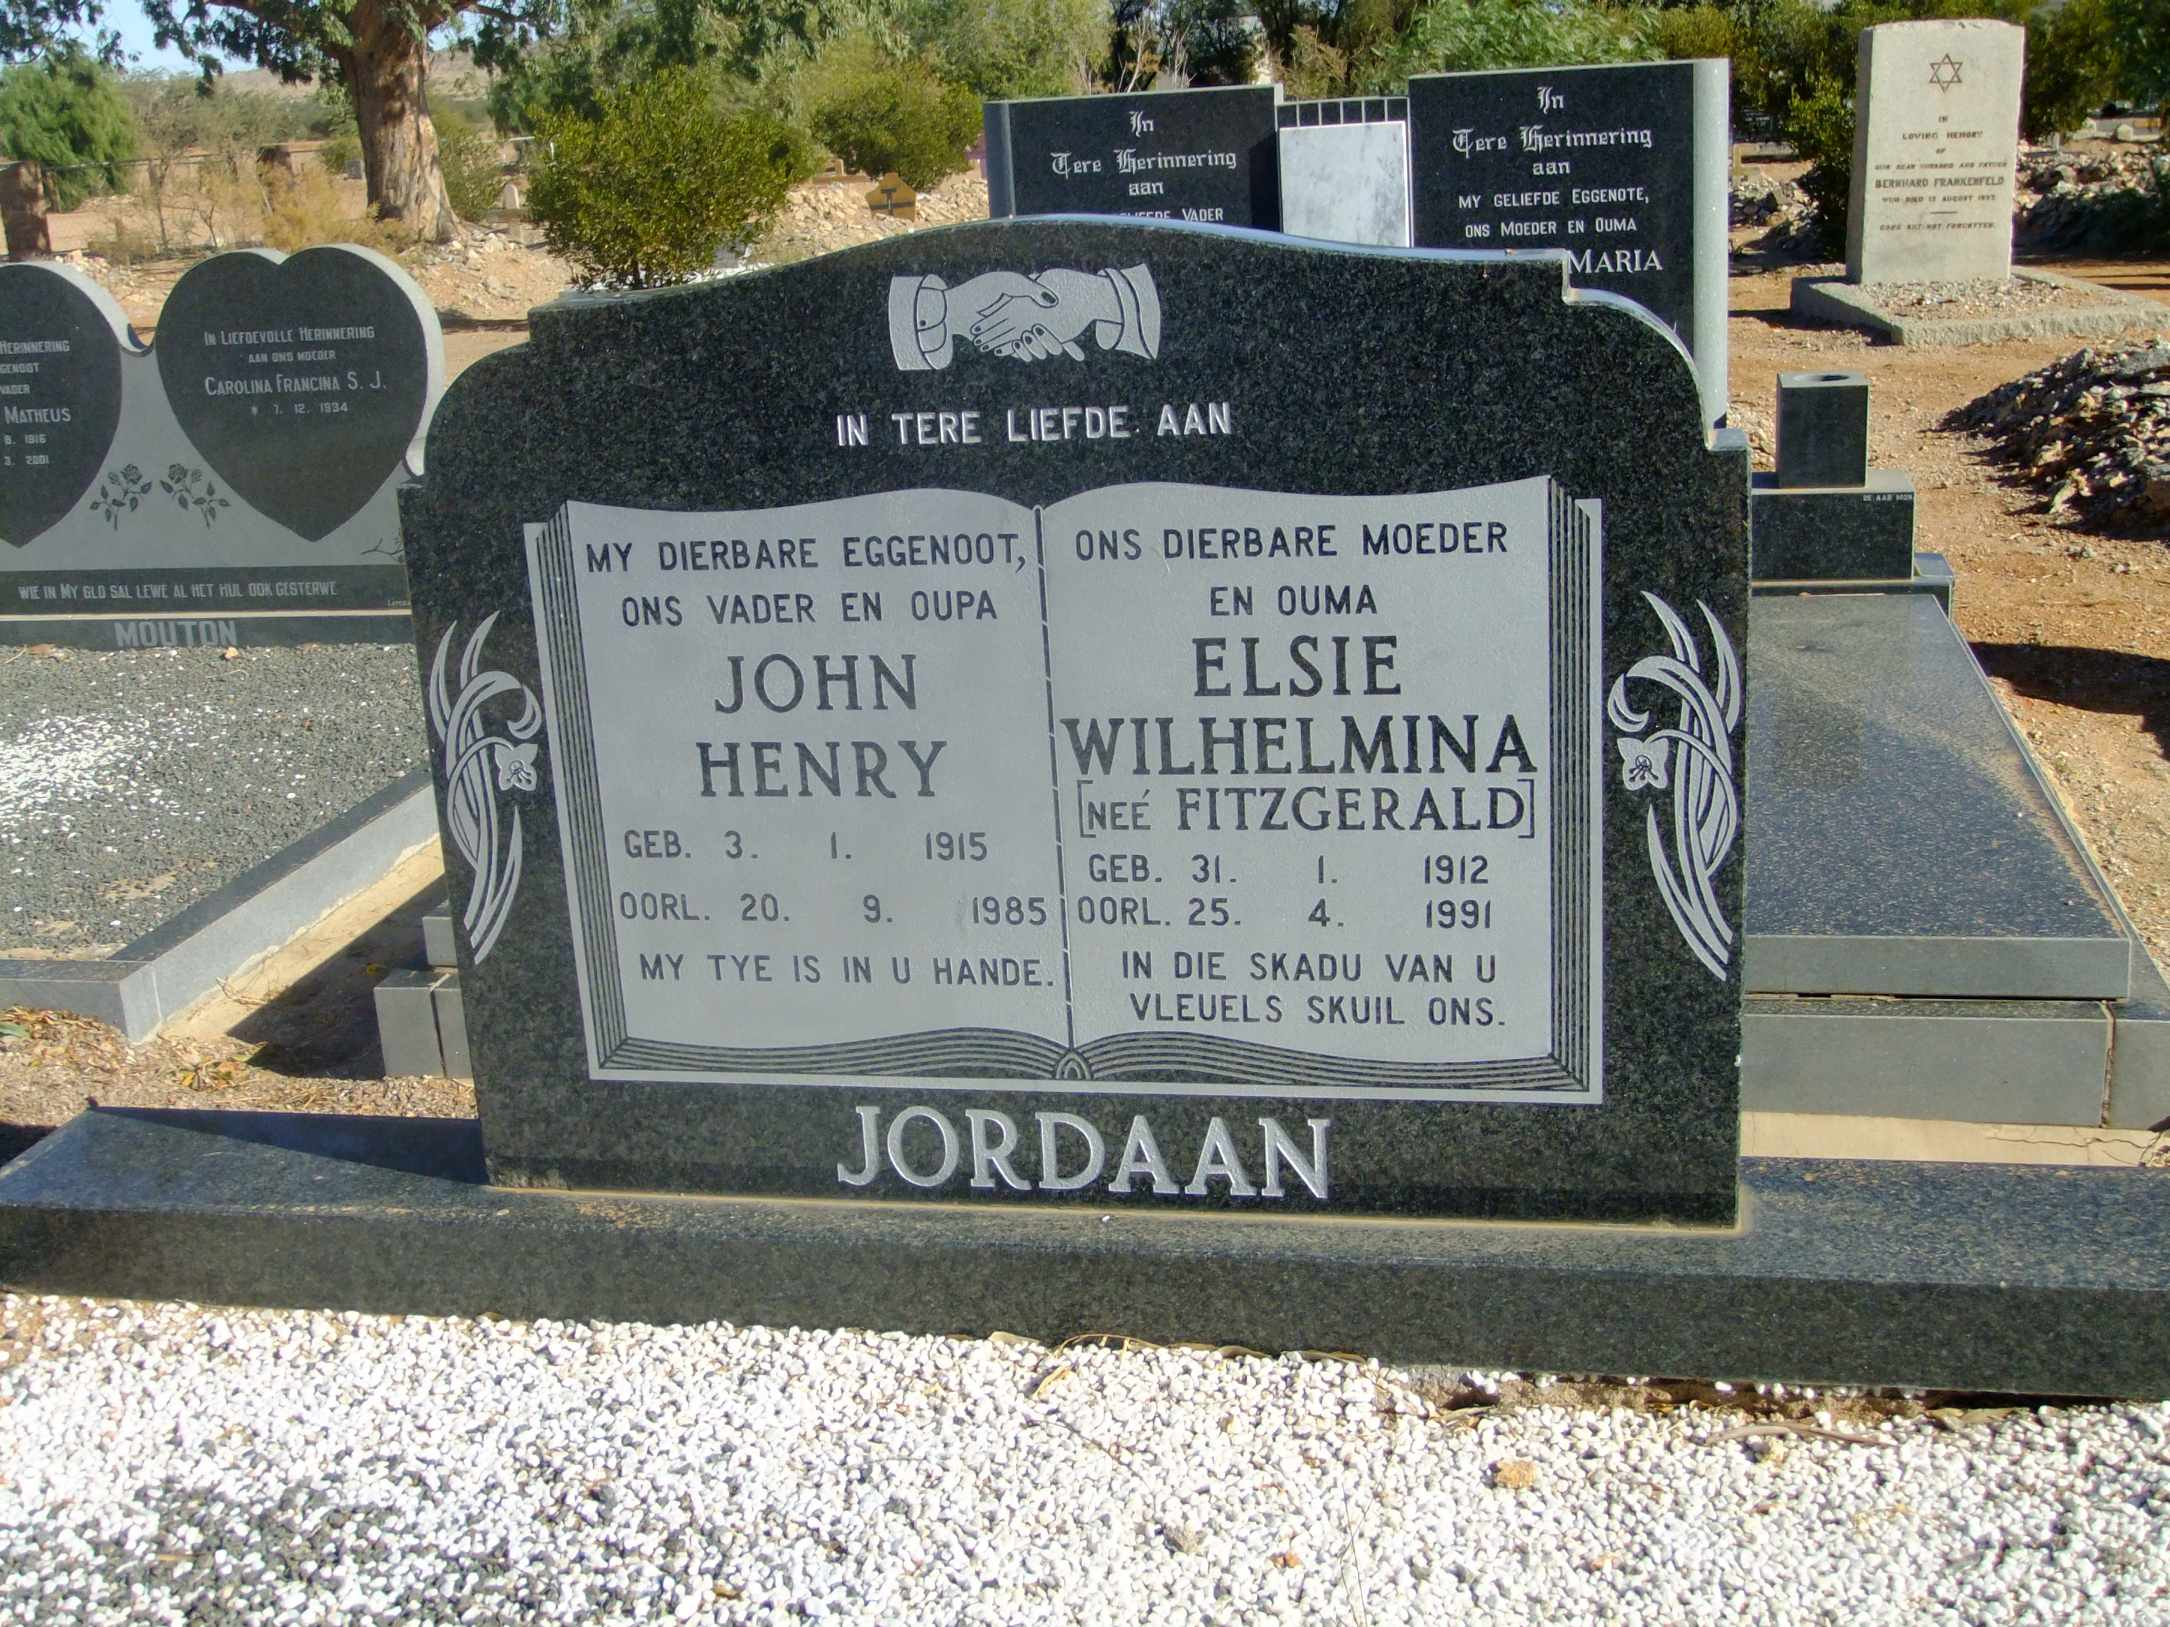 Jordaan, John Henry born 03 January 1915 died 20 September 1985 and Elisie Wilhelmina nee Fitzgerald born 31 January 1912 died 25 April 1991